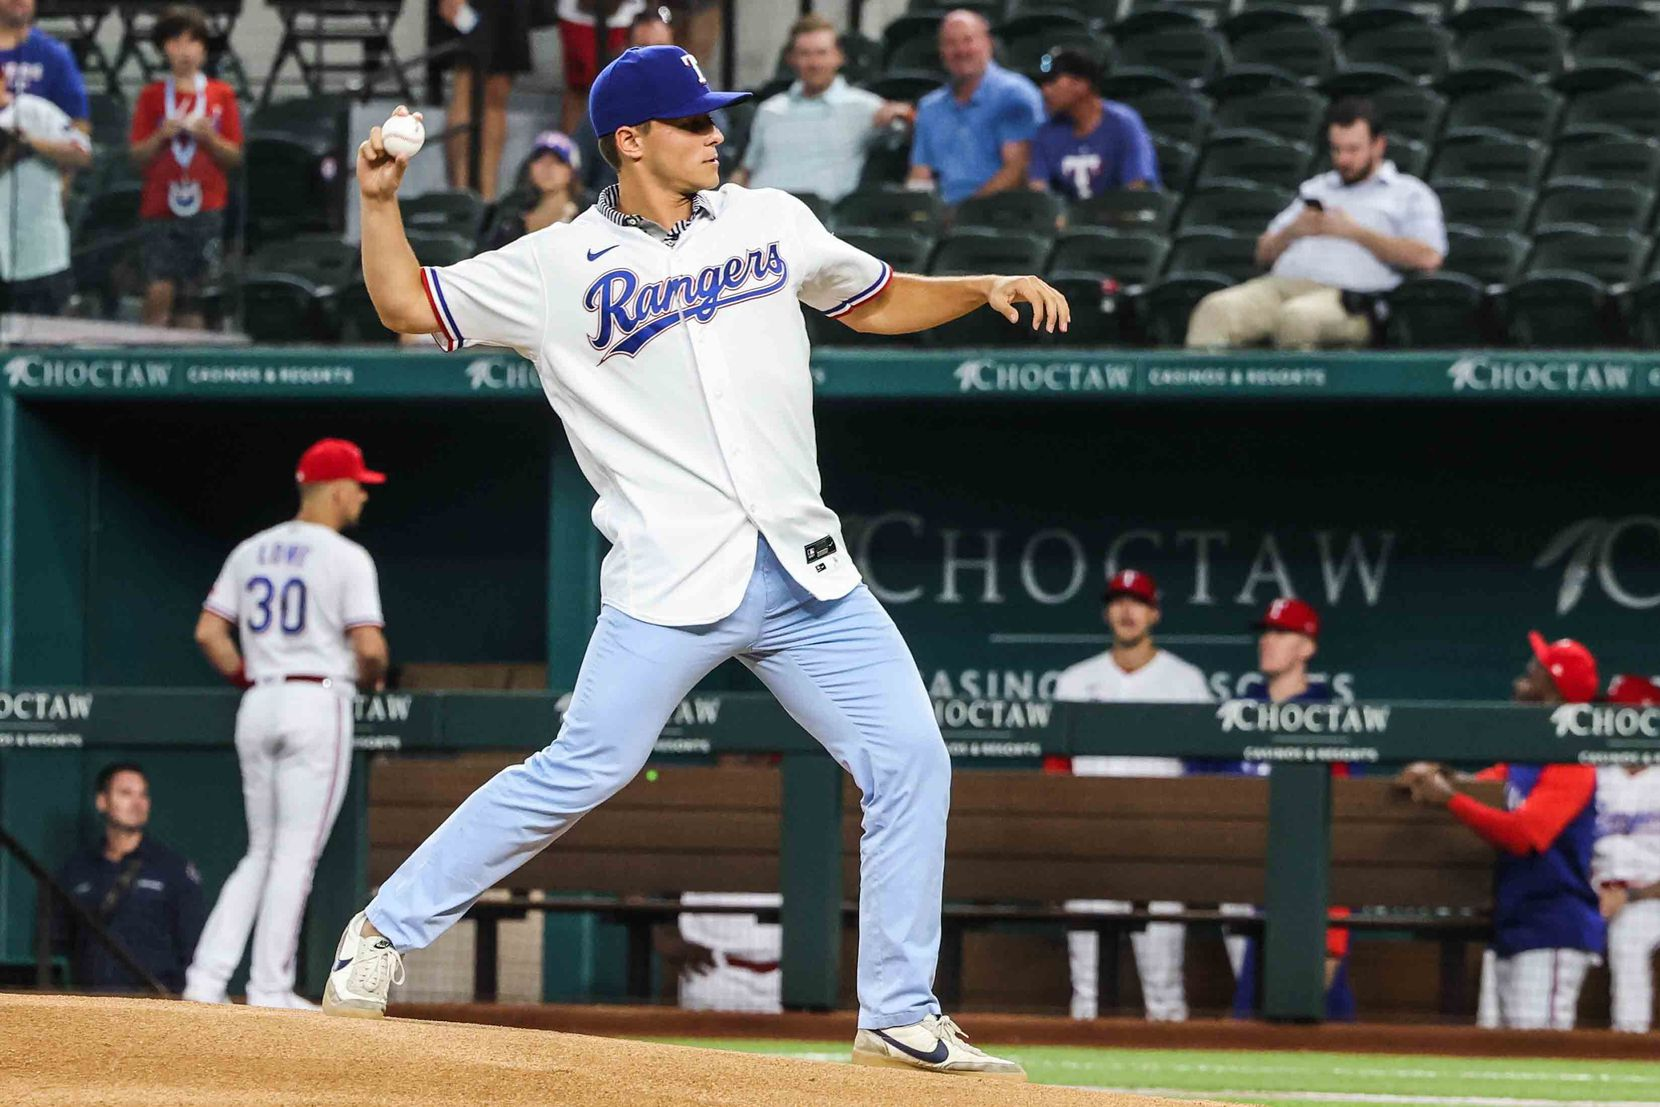 First pitch by Jack Leiter for Arizona Diamondbacks at Texas Rangers at the Globe Life Field in Arlington, Texas on Wednesday, July 28, 2021.